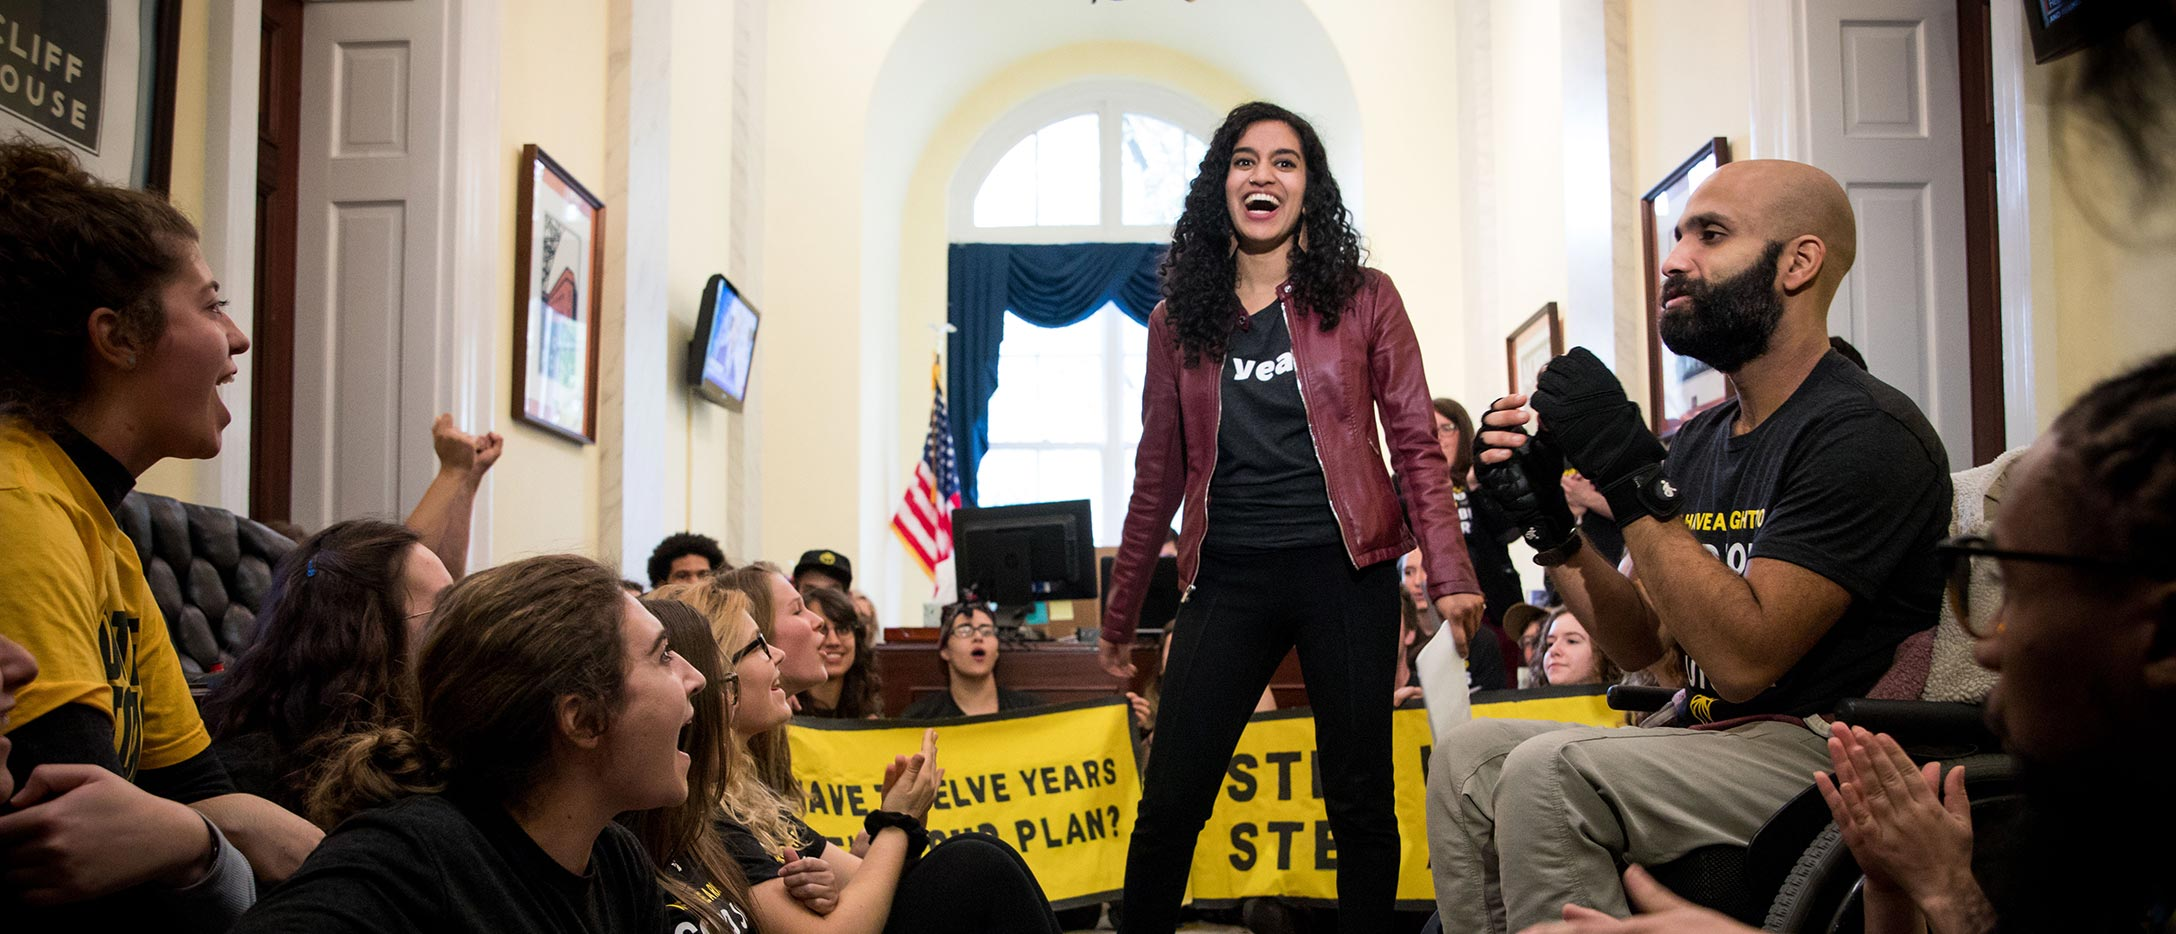 Varshini Prakash '15 speaks to demonstrators at a Sunrise Movement sit-in at the offices of the Speaker of the House.